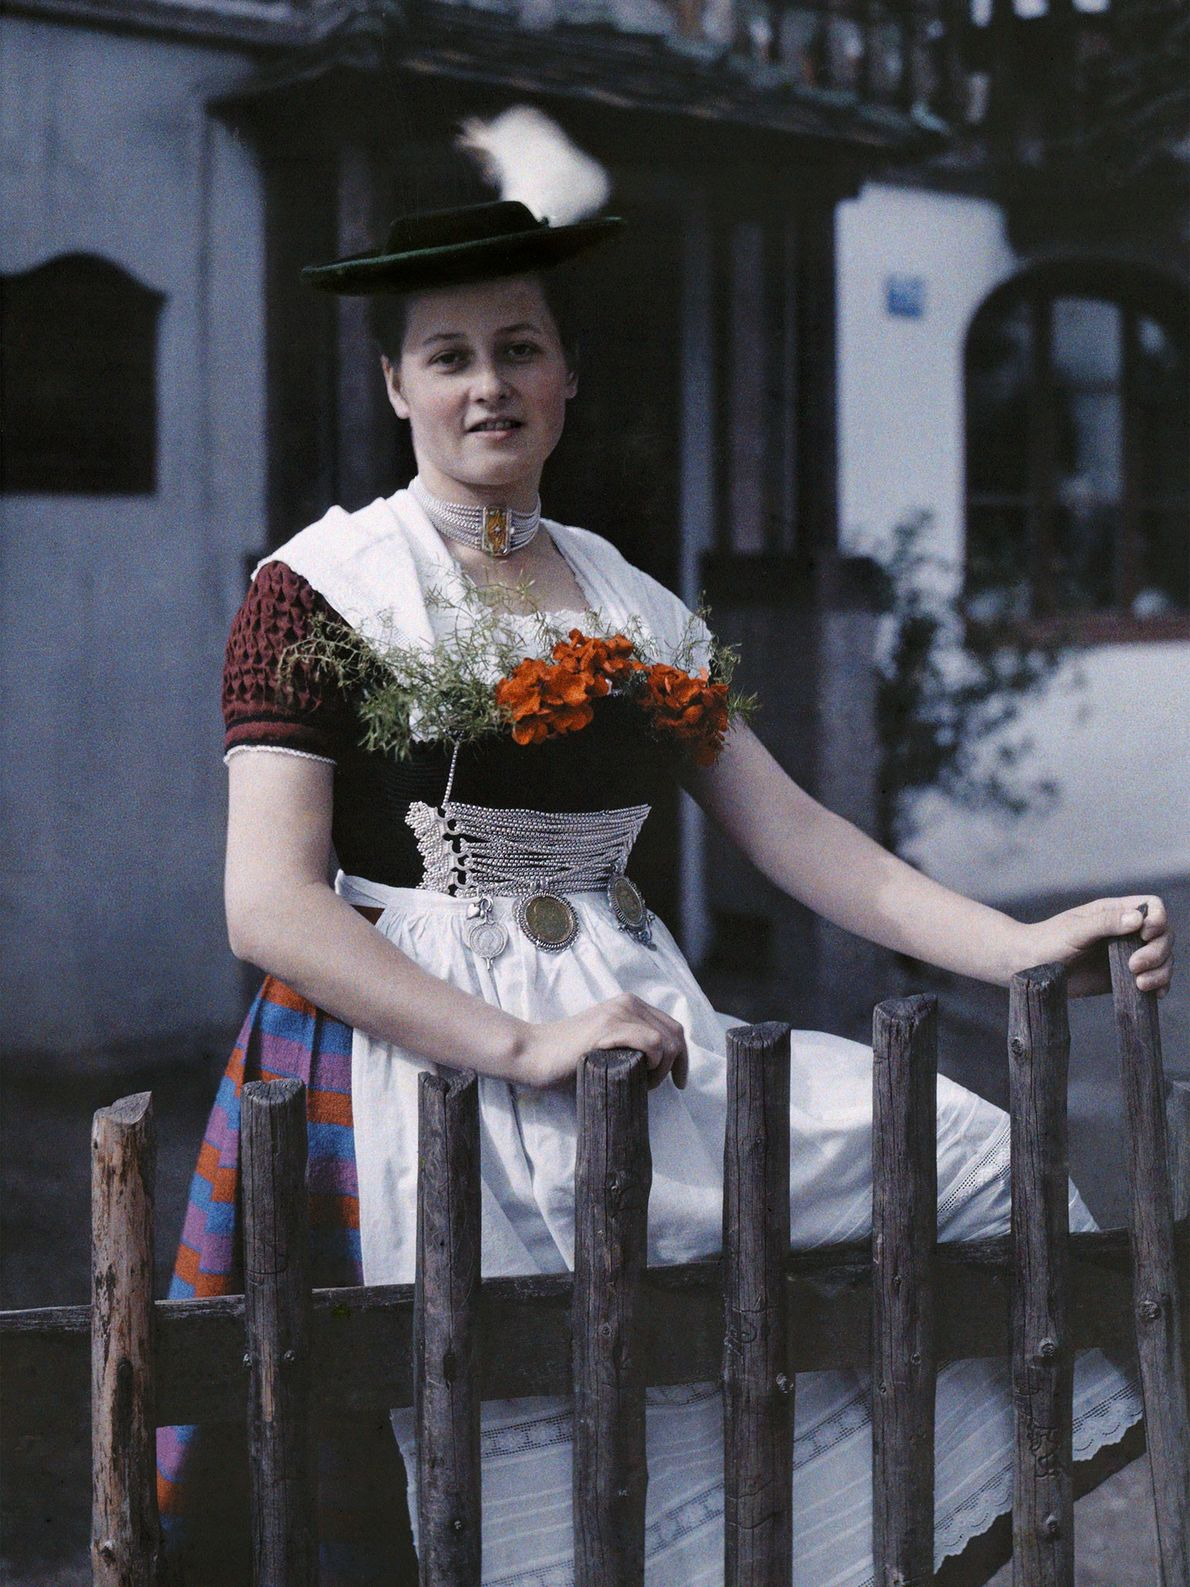 A Bavarian woman poses by a fence near her house in Germany wearing a nearly flat ...